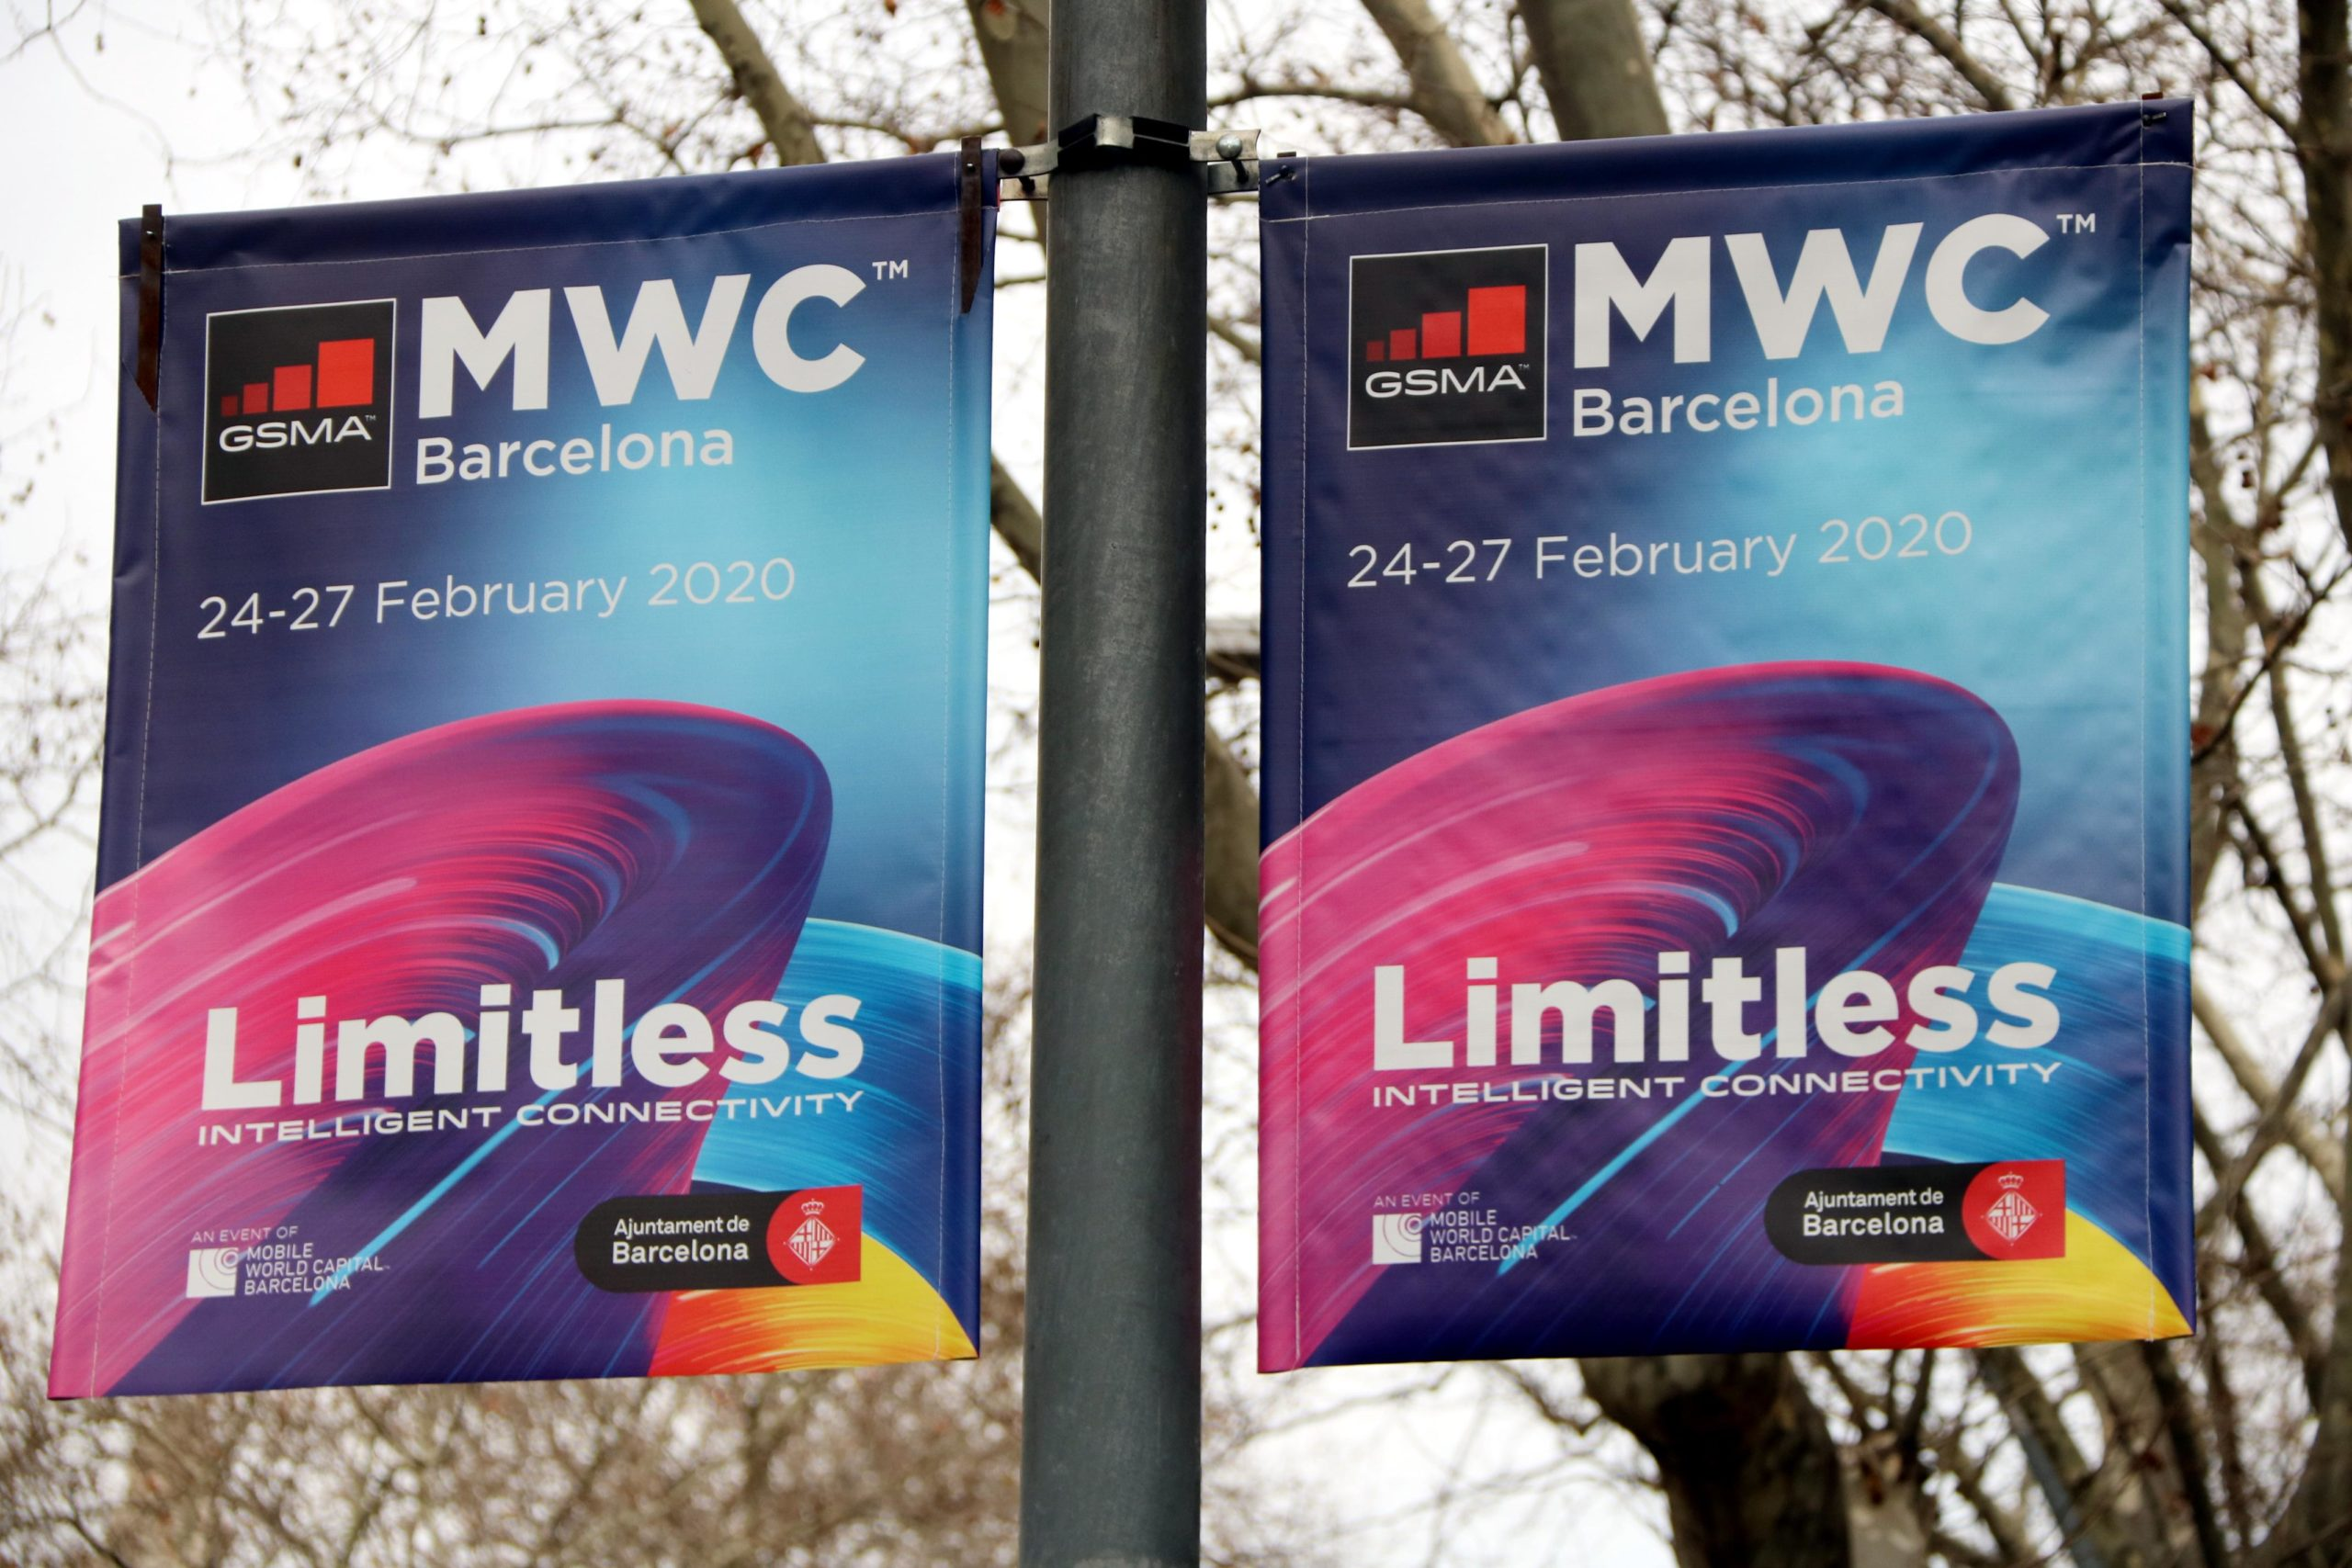 Publicitat del Mobile World Congress (MWC) 2020 a la Gran Via / ACN